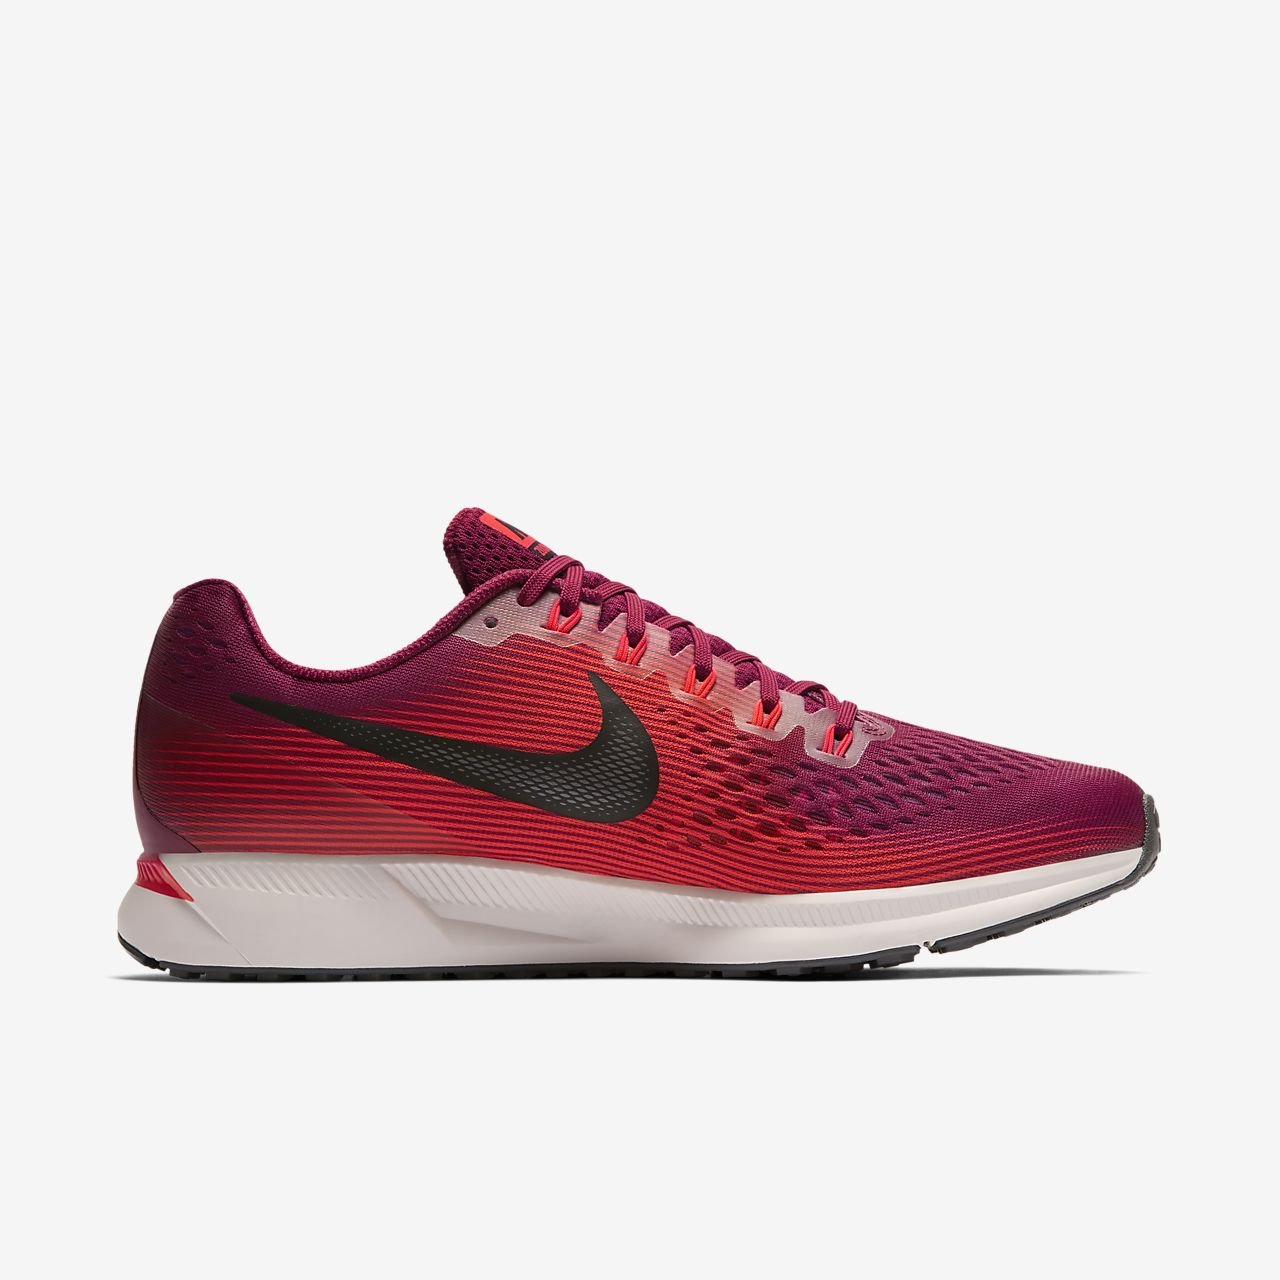 ... Nike Air Zoom Pegasus 34 Men's Running Shoe